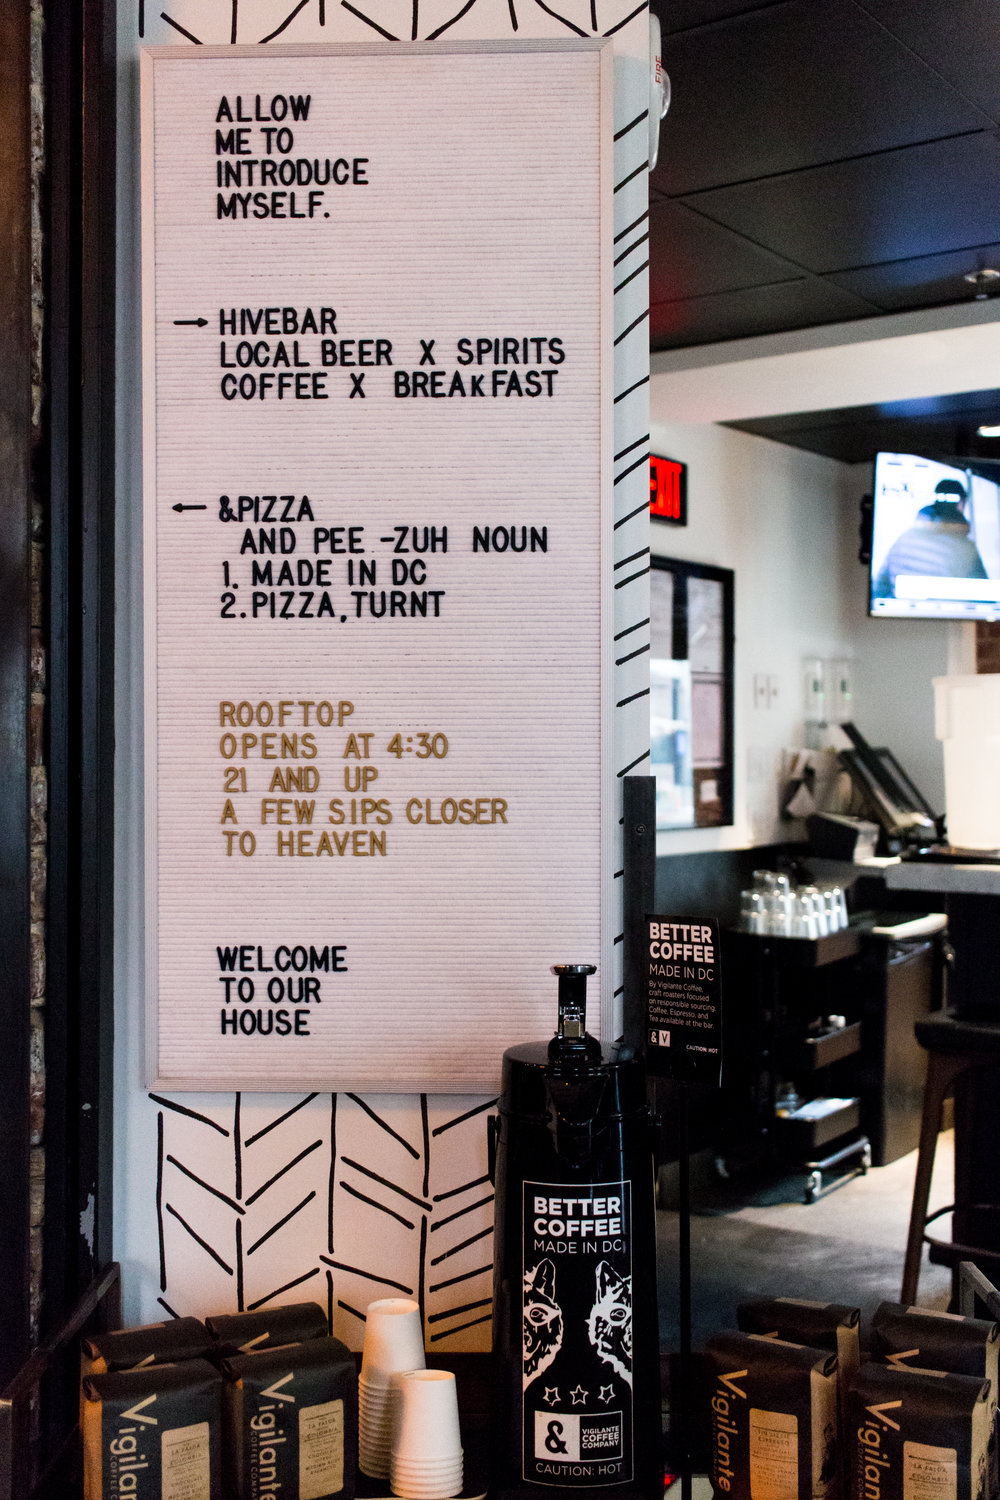 hotel-hive-quirky-micro-hotel-menu-sign